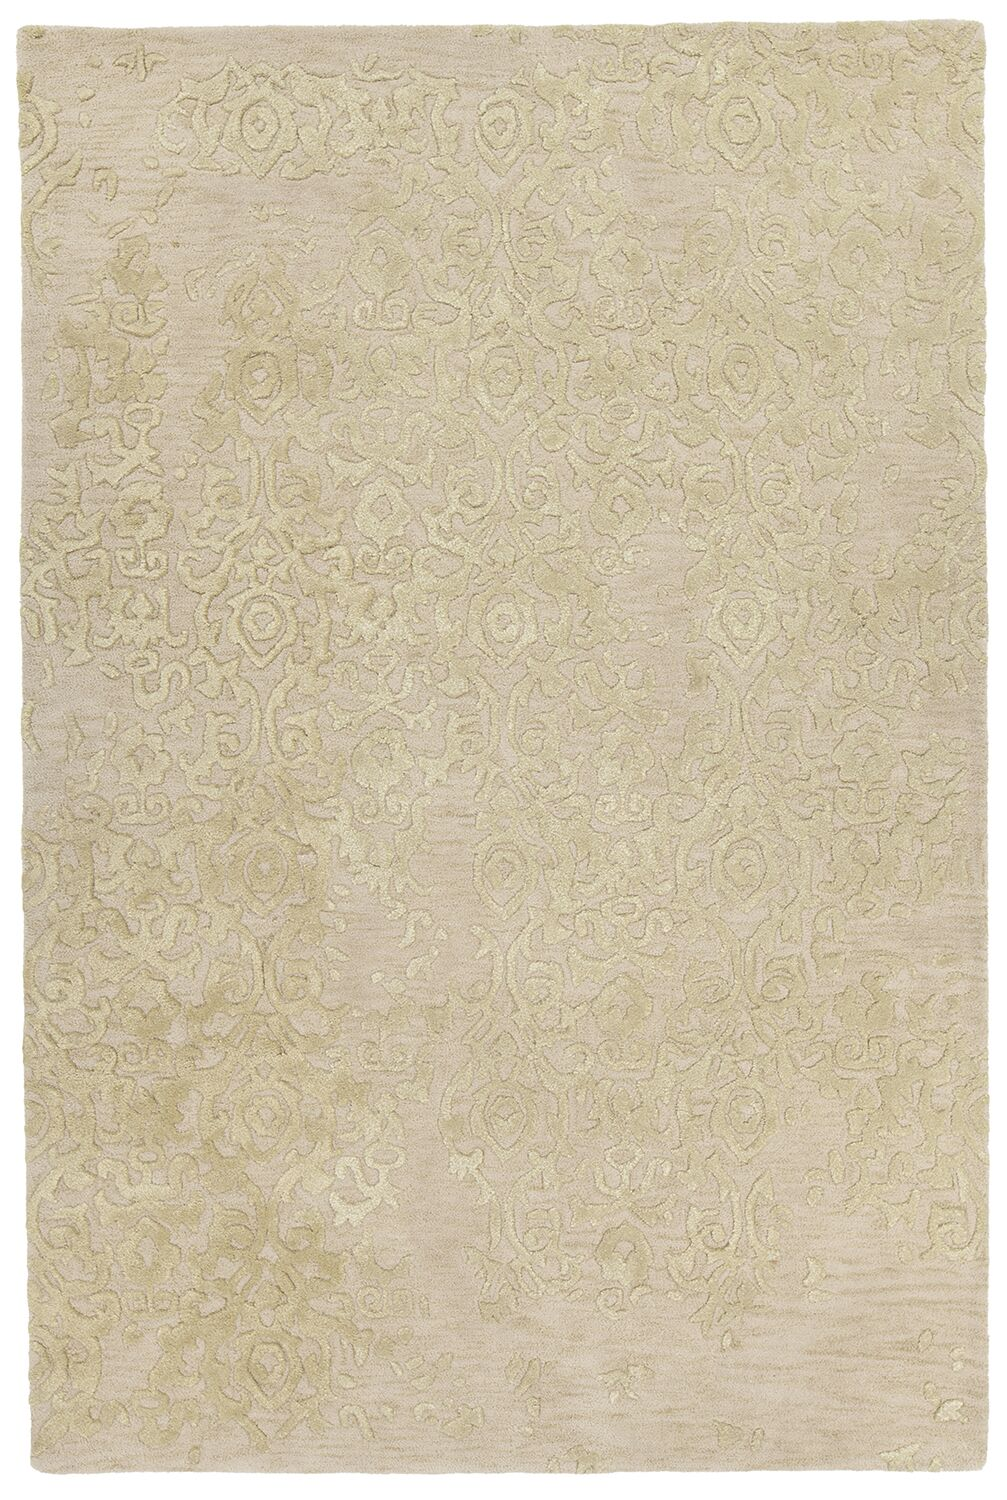 Boothby Hand-Tufted Ivory/Yellow Area Rug Rug Size: 7'9